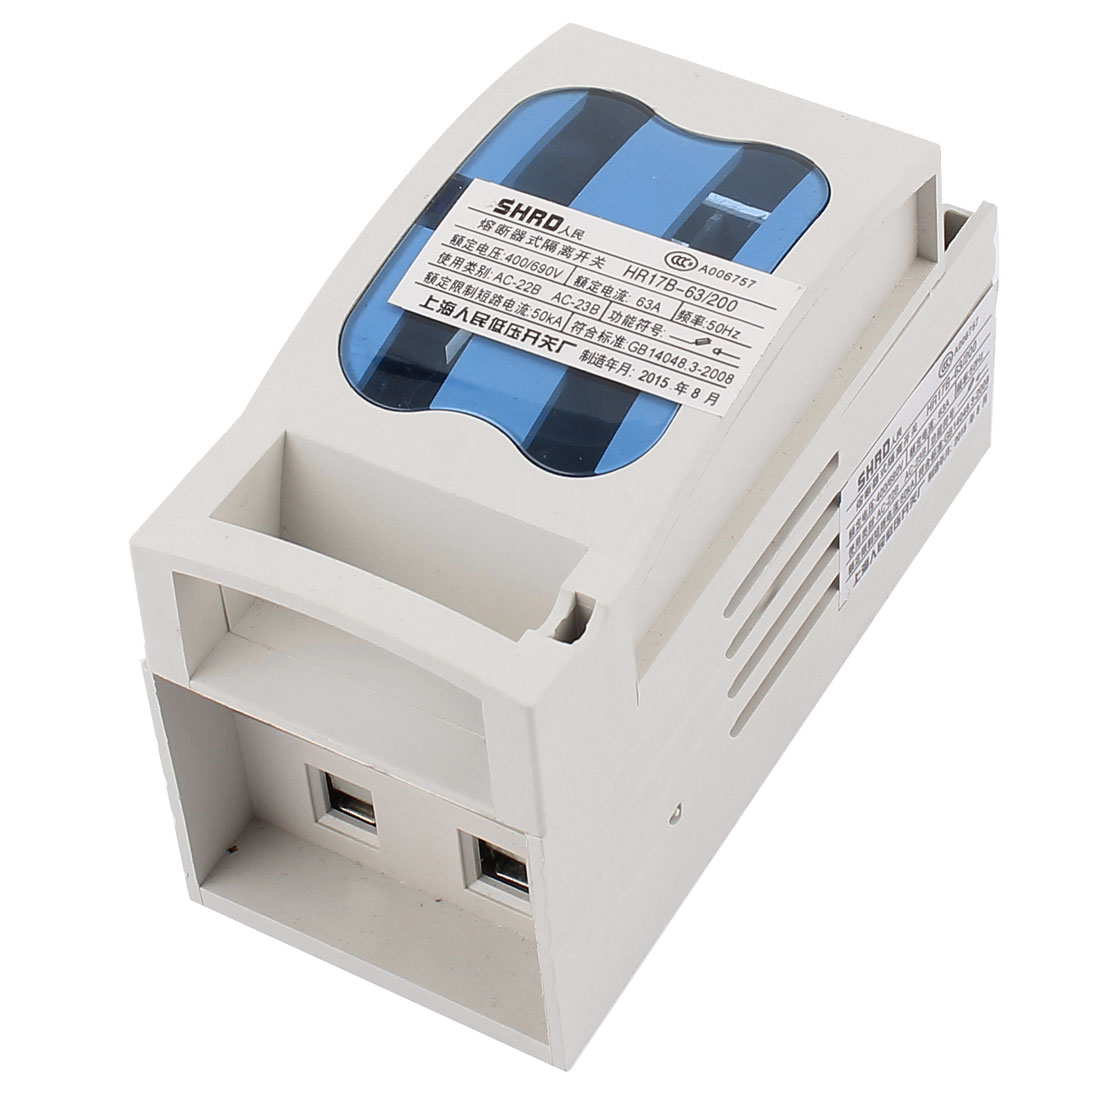 AC 400V/690V 63A Circuit Protector Fuse Type Disconnect Isolating Switch